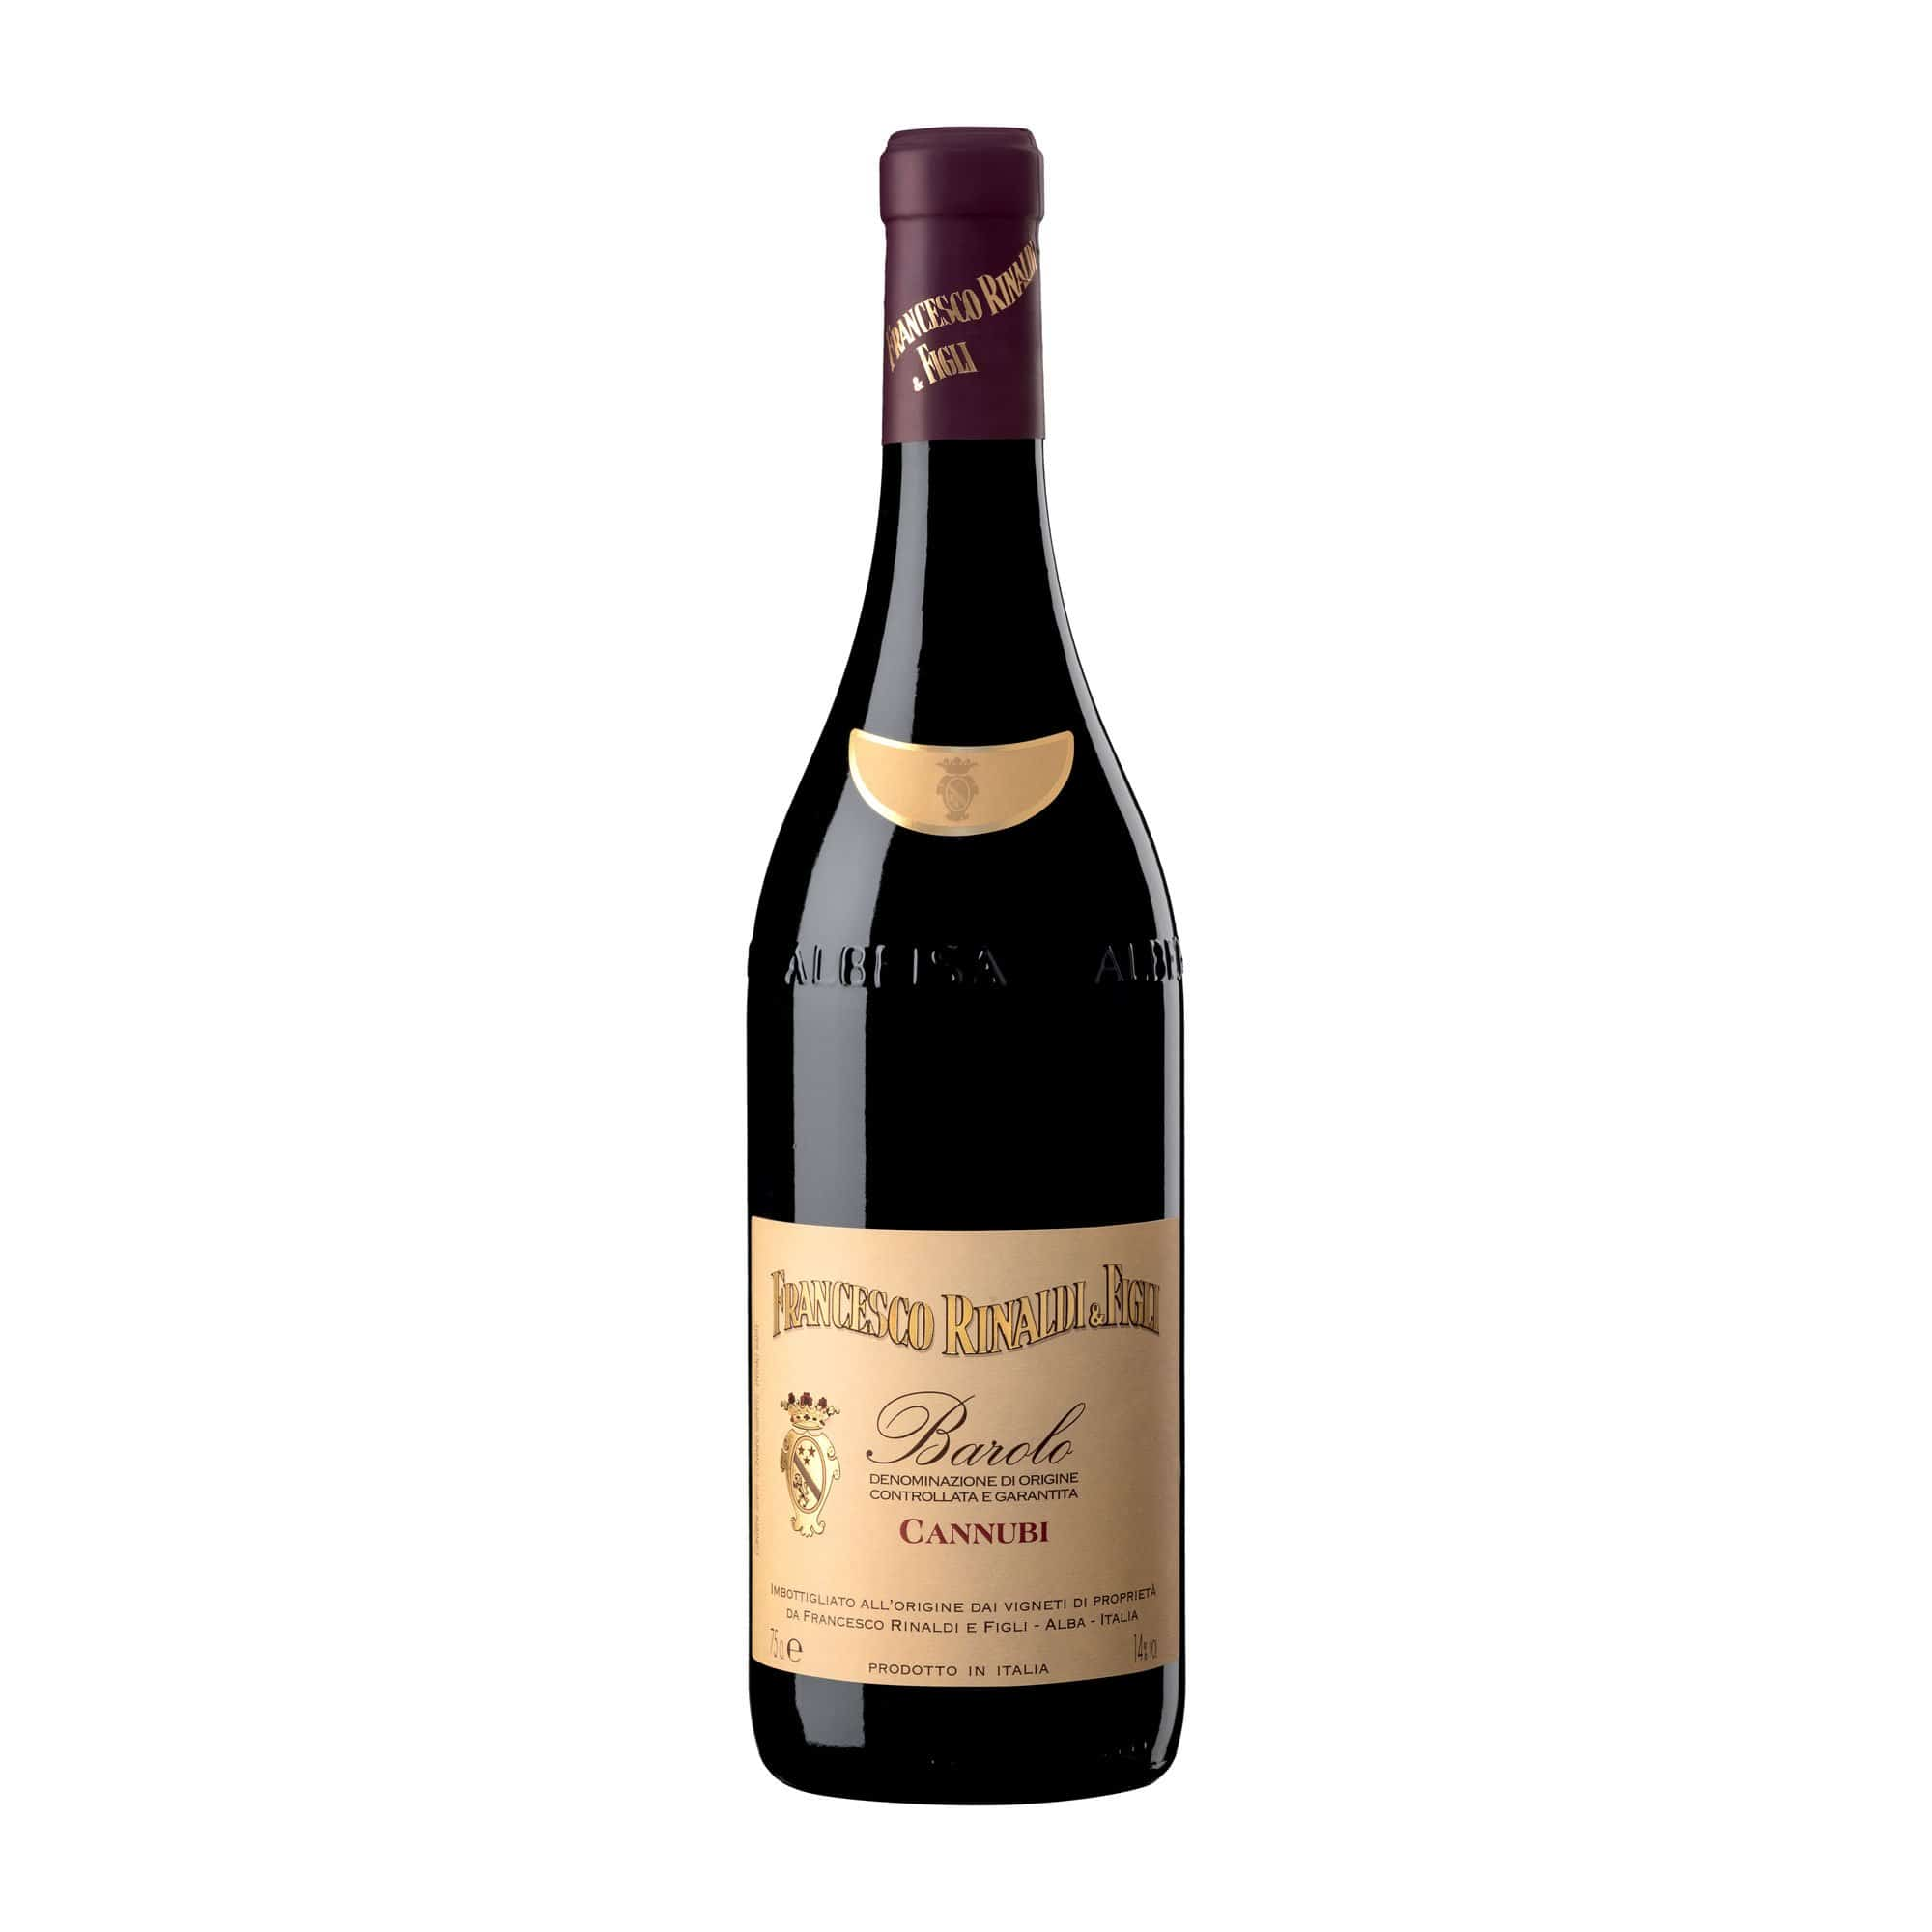 Red Wine Barolo Cannubi Francesco Rinaldi 2016